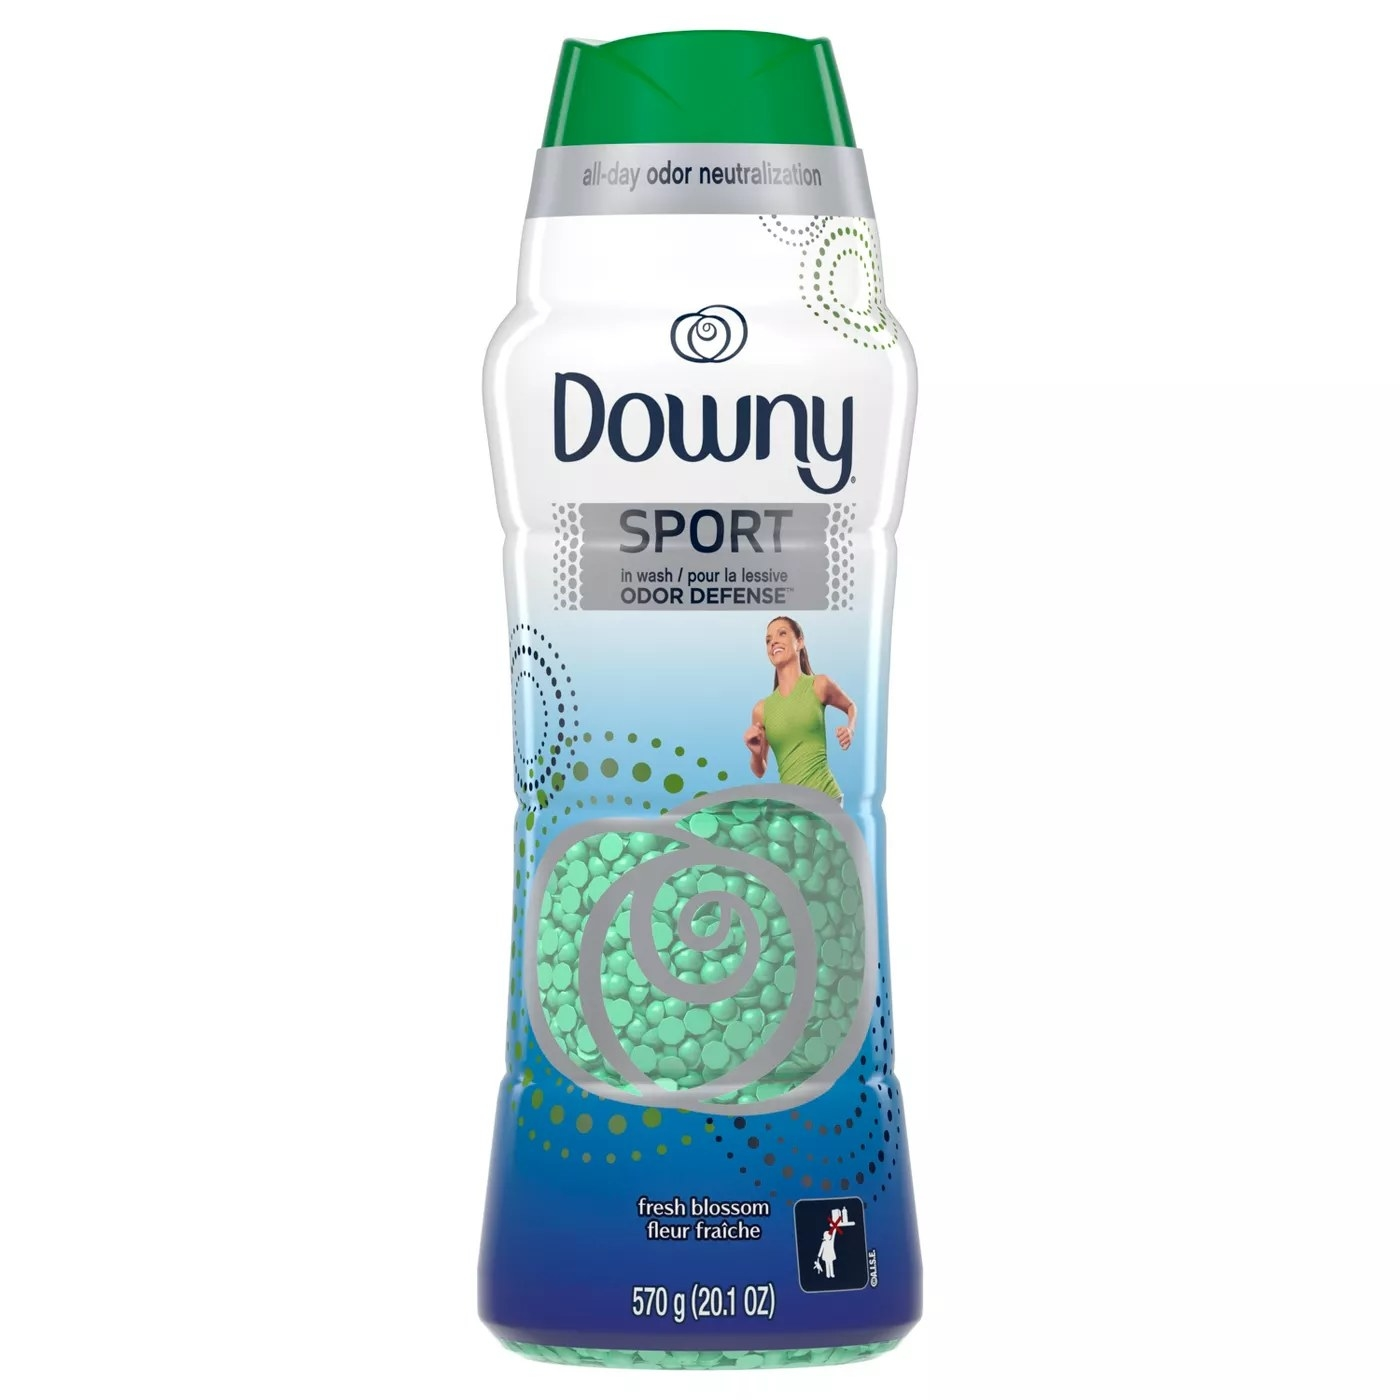 A bottle of Downy's sport odor defense beads that provide all-day odor neutralization